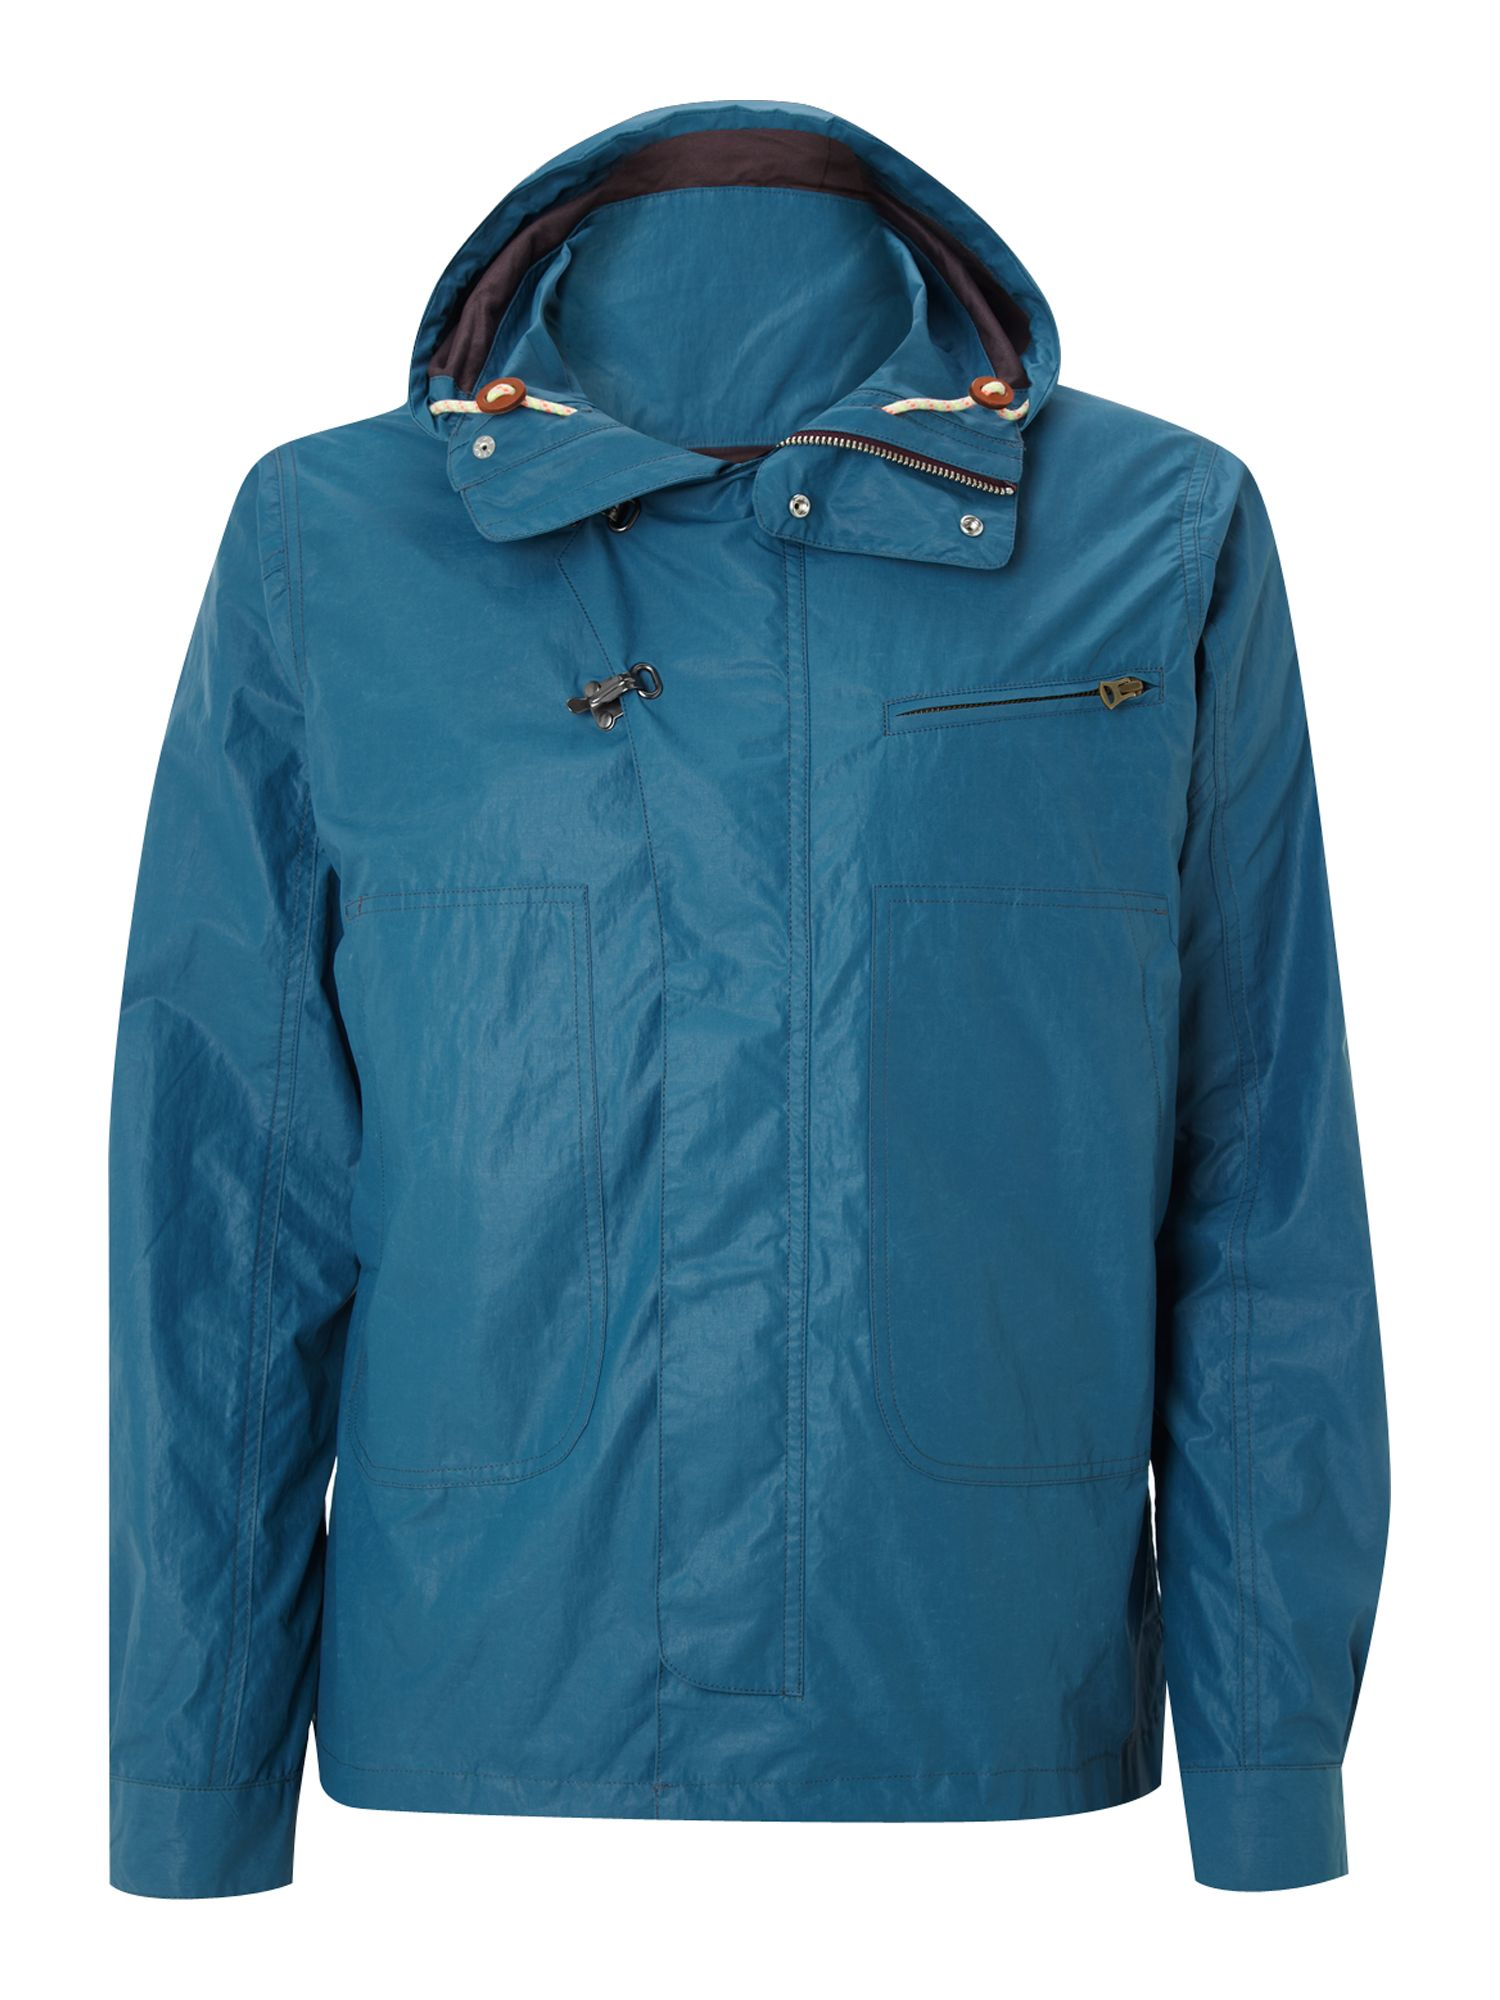 Deck jacket with hood and clip detail fastening